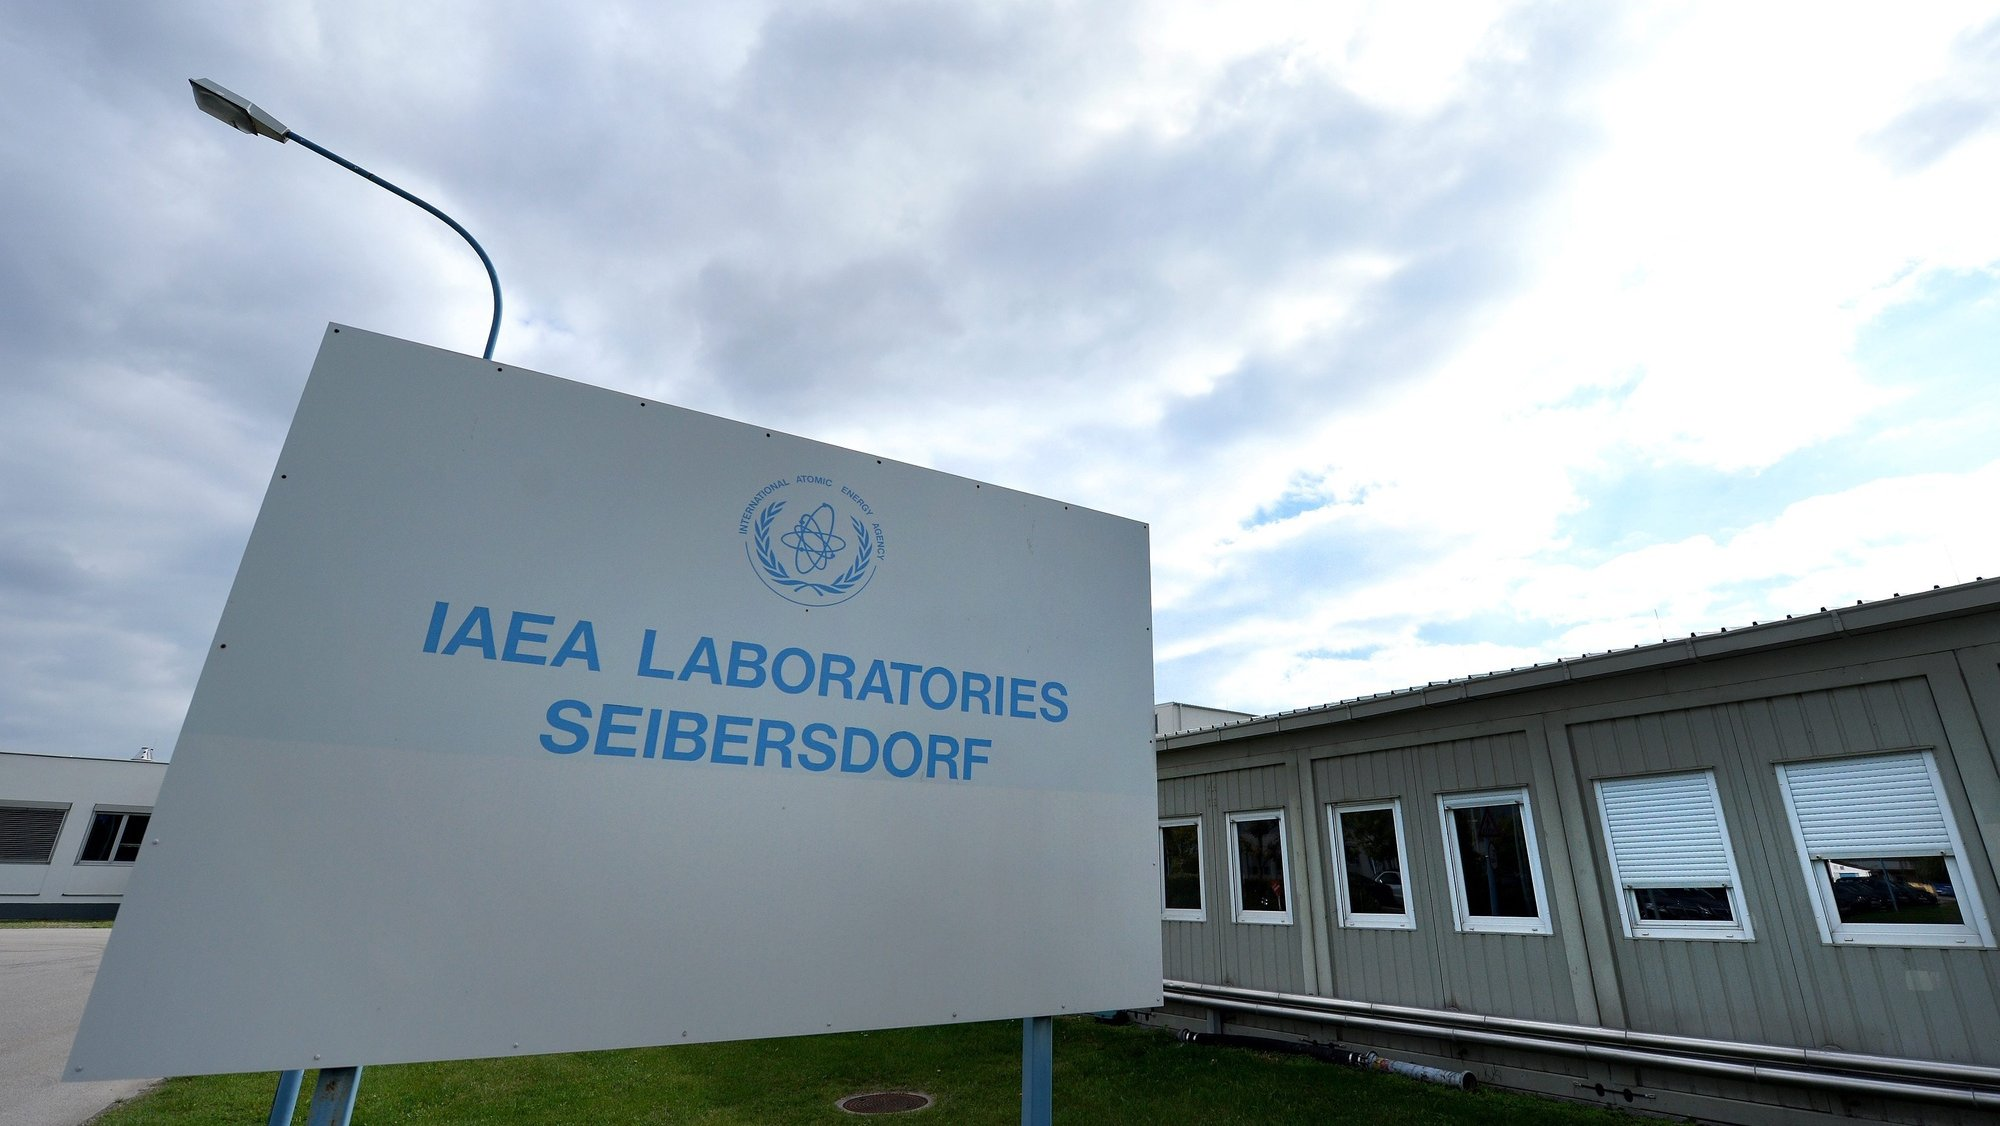 epa03880875 The entrance to the International Atomic Energy Agency's (IAEA) new nuclear Material Laboratory at the Agency's Seibersdorf facility in Seibersdorf, Austria, 23  September 2013. The laboratory is an essential component of the Agency's safeguards activities, as it analyses material sampled by safeguards inspectors from nuclear fuel cycle processes. The new building, which began construction in 2011, replaces an aging building which no longer meets the needs of the IAEA.  EPA/ROBERT JAEGER